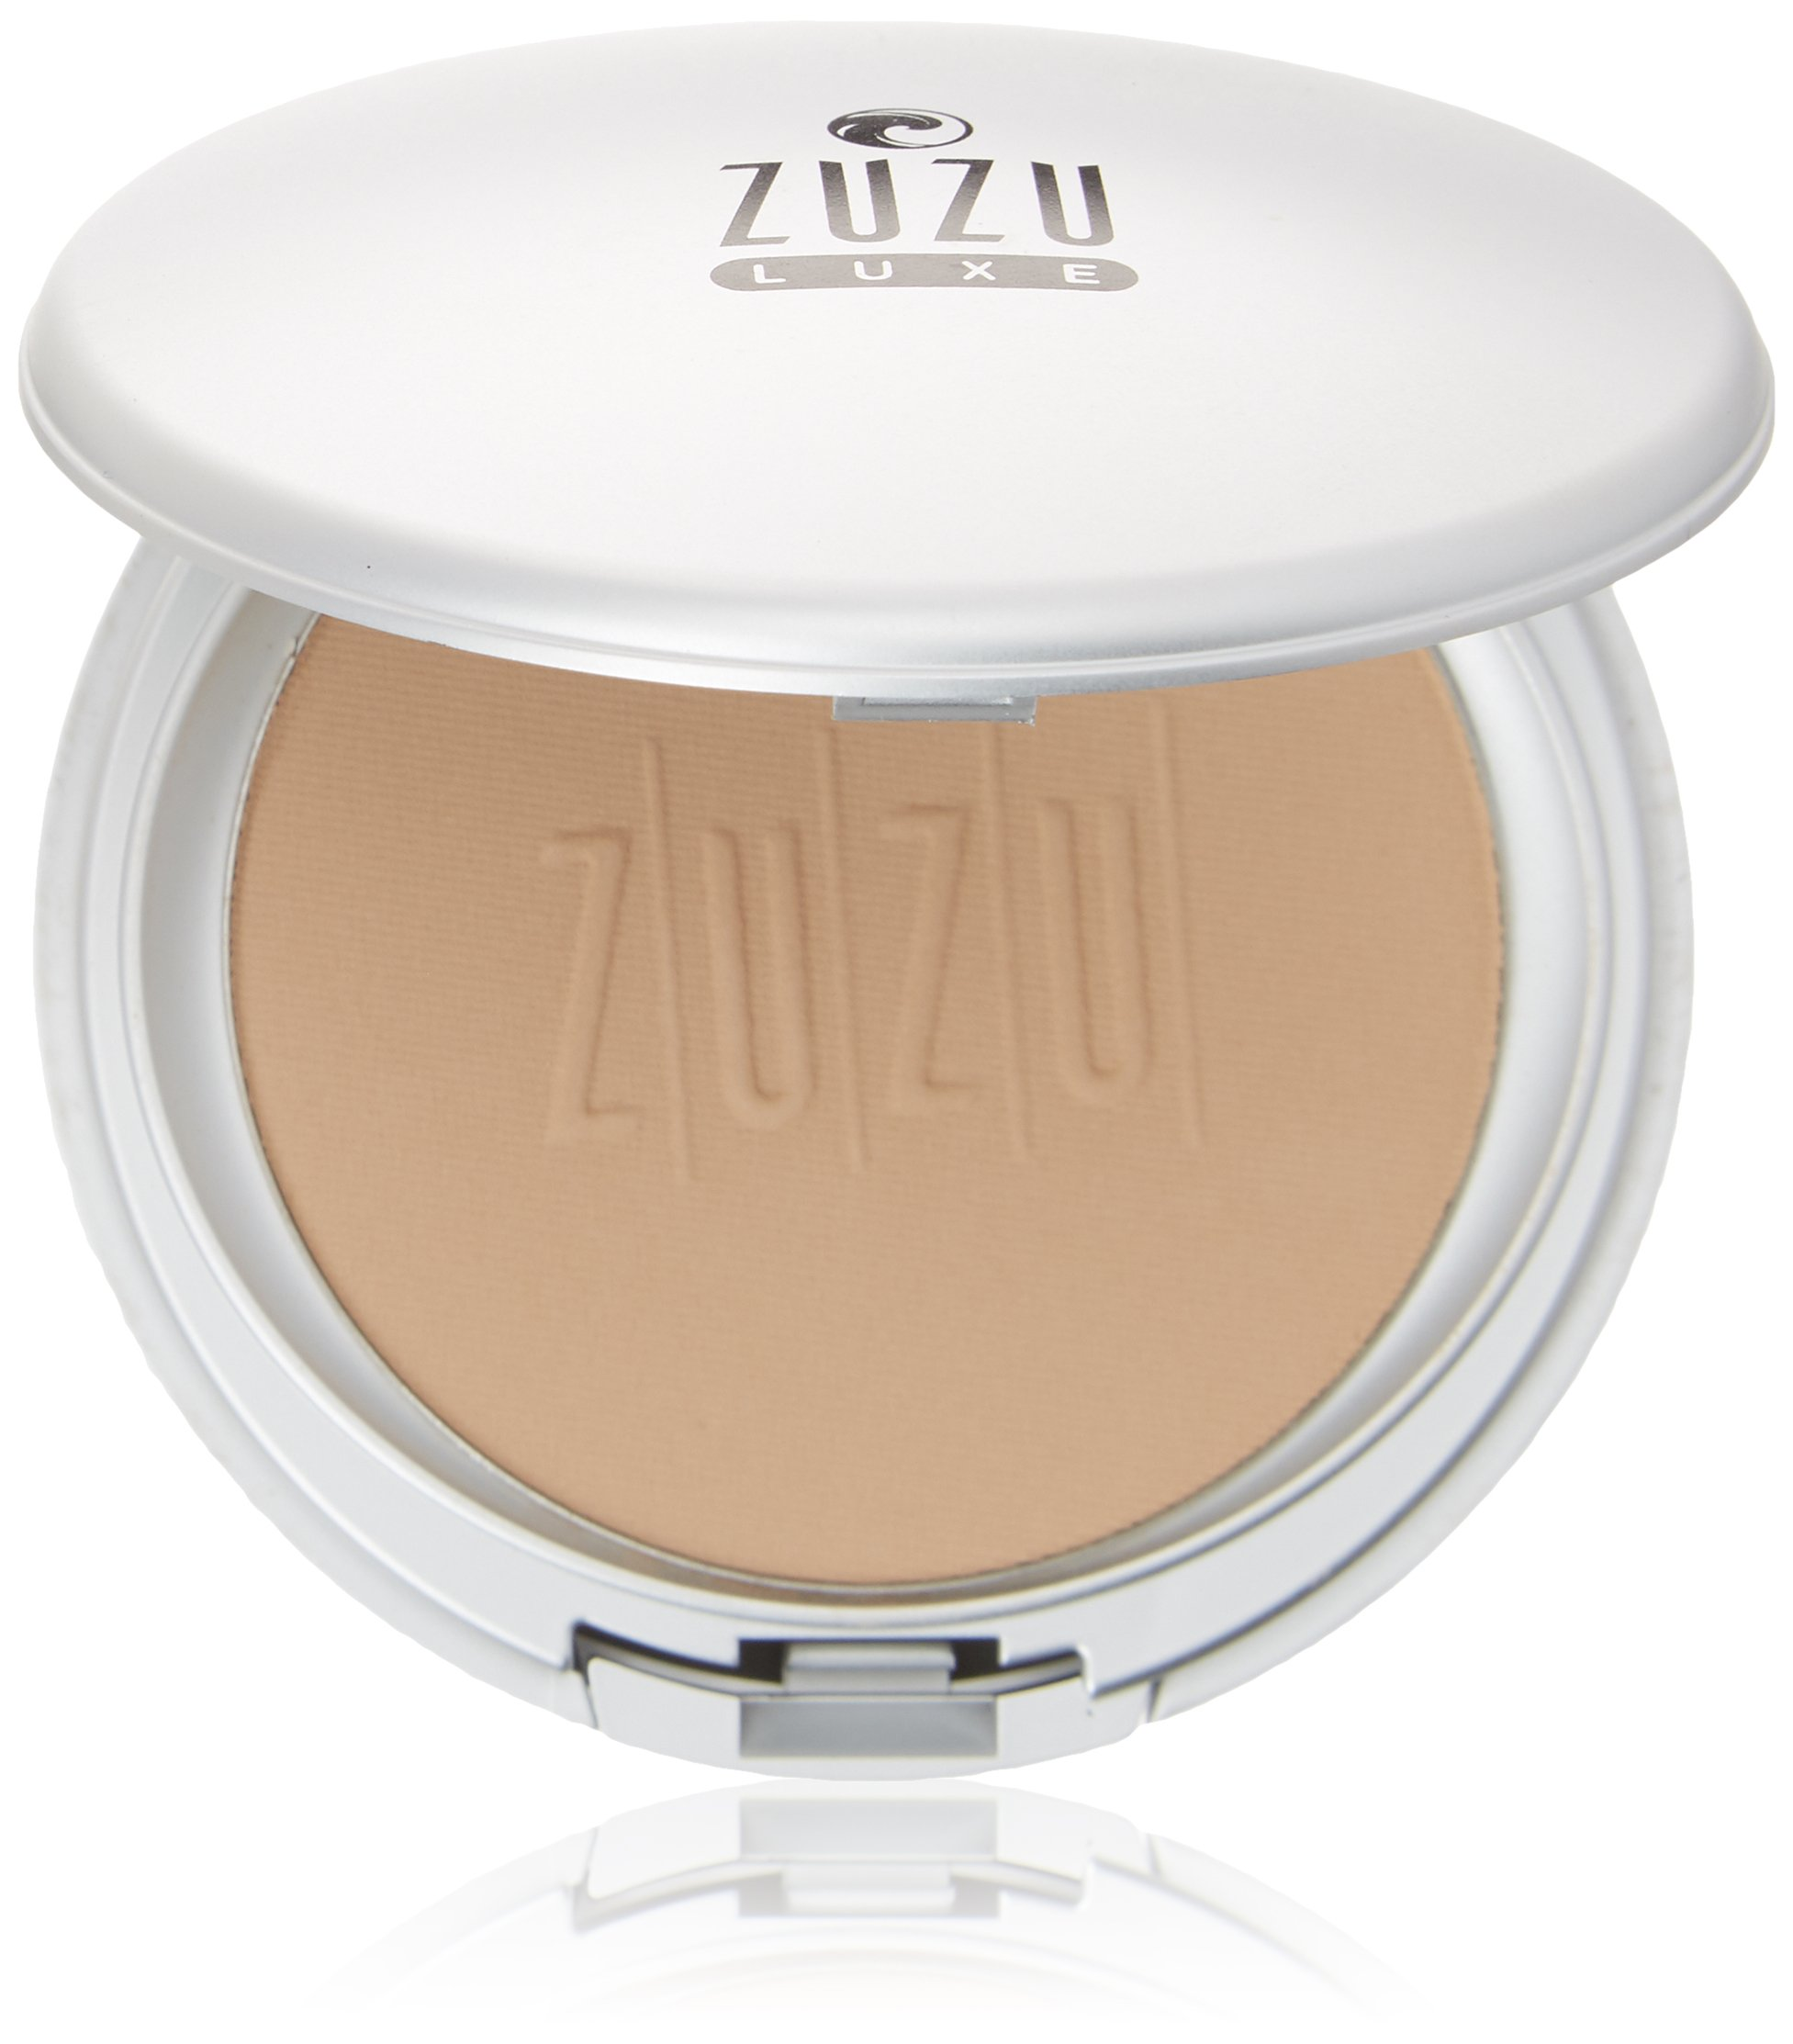 Zuzu Luxe - Dual Powder Foundation (D - 17),0.32 ozMineral Powder, Pressed mineral powder, medium to full coverage, natural finish. Natural, Paraben Free, Vegan, Gluten-free, Cruelty-free, Non GMO.